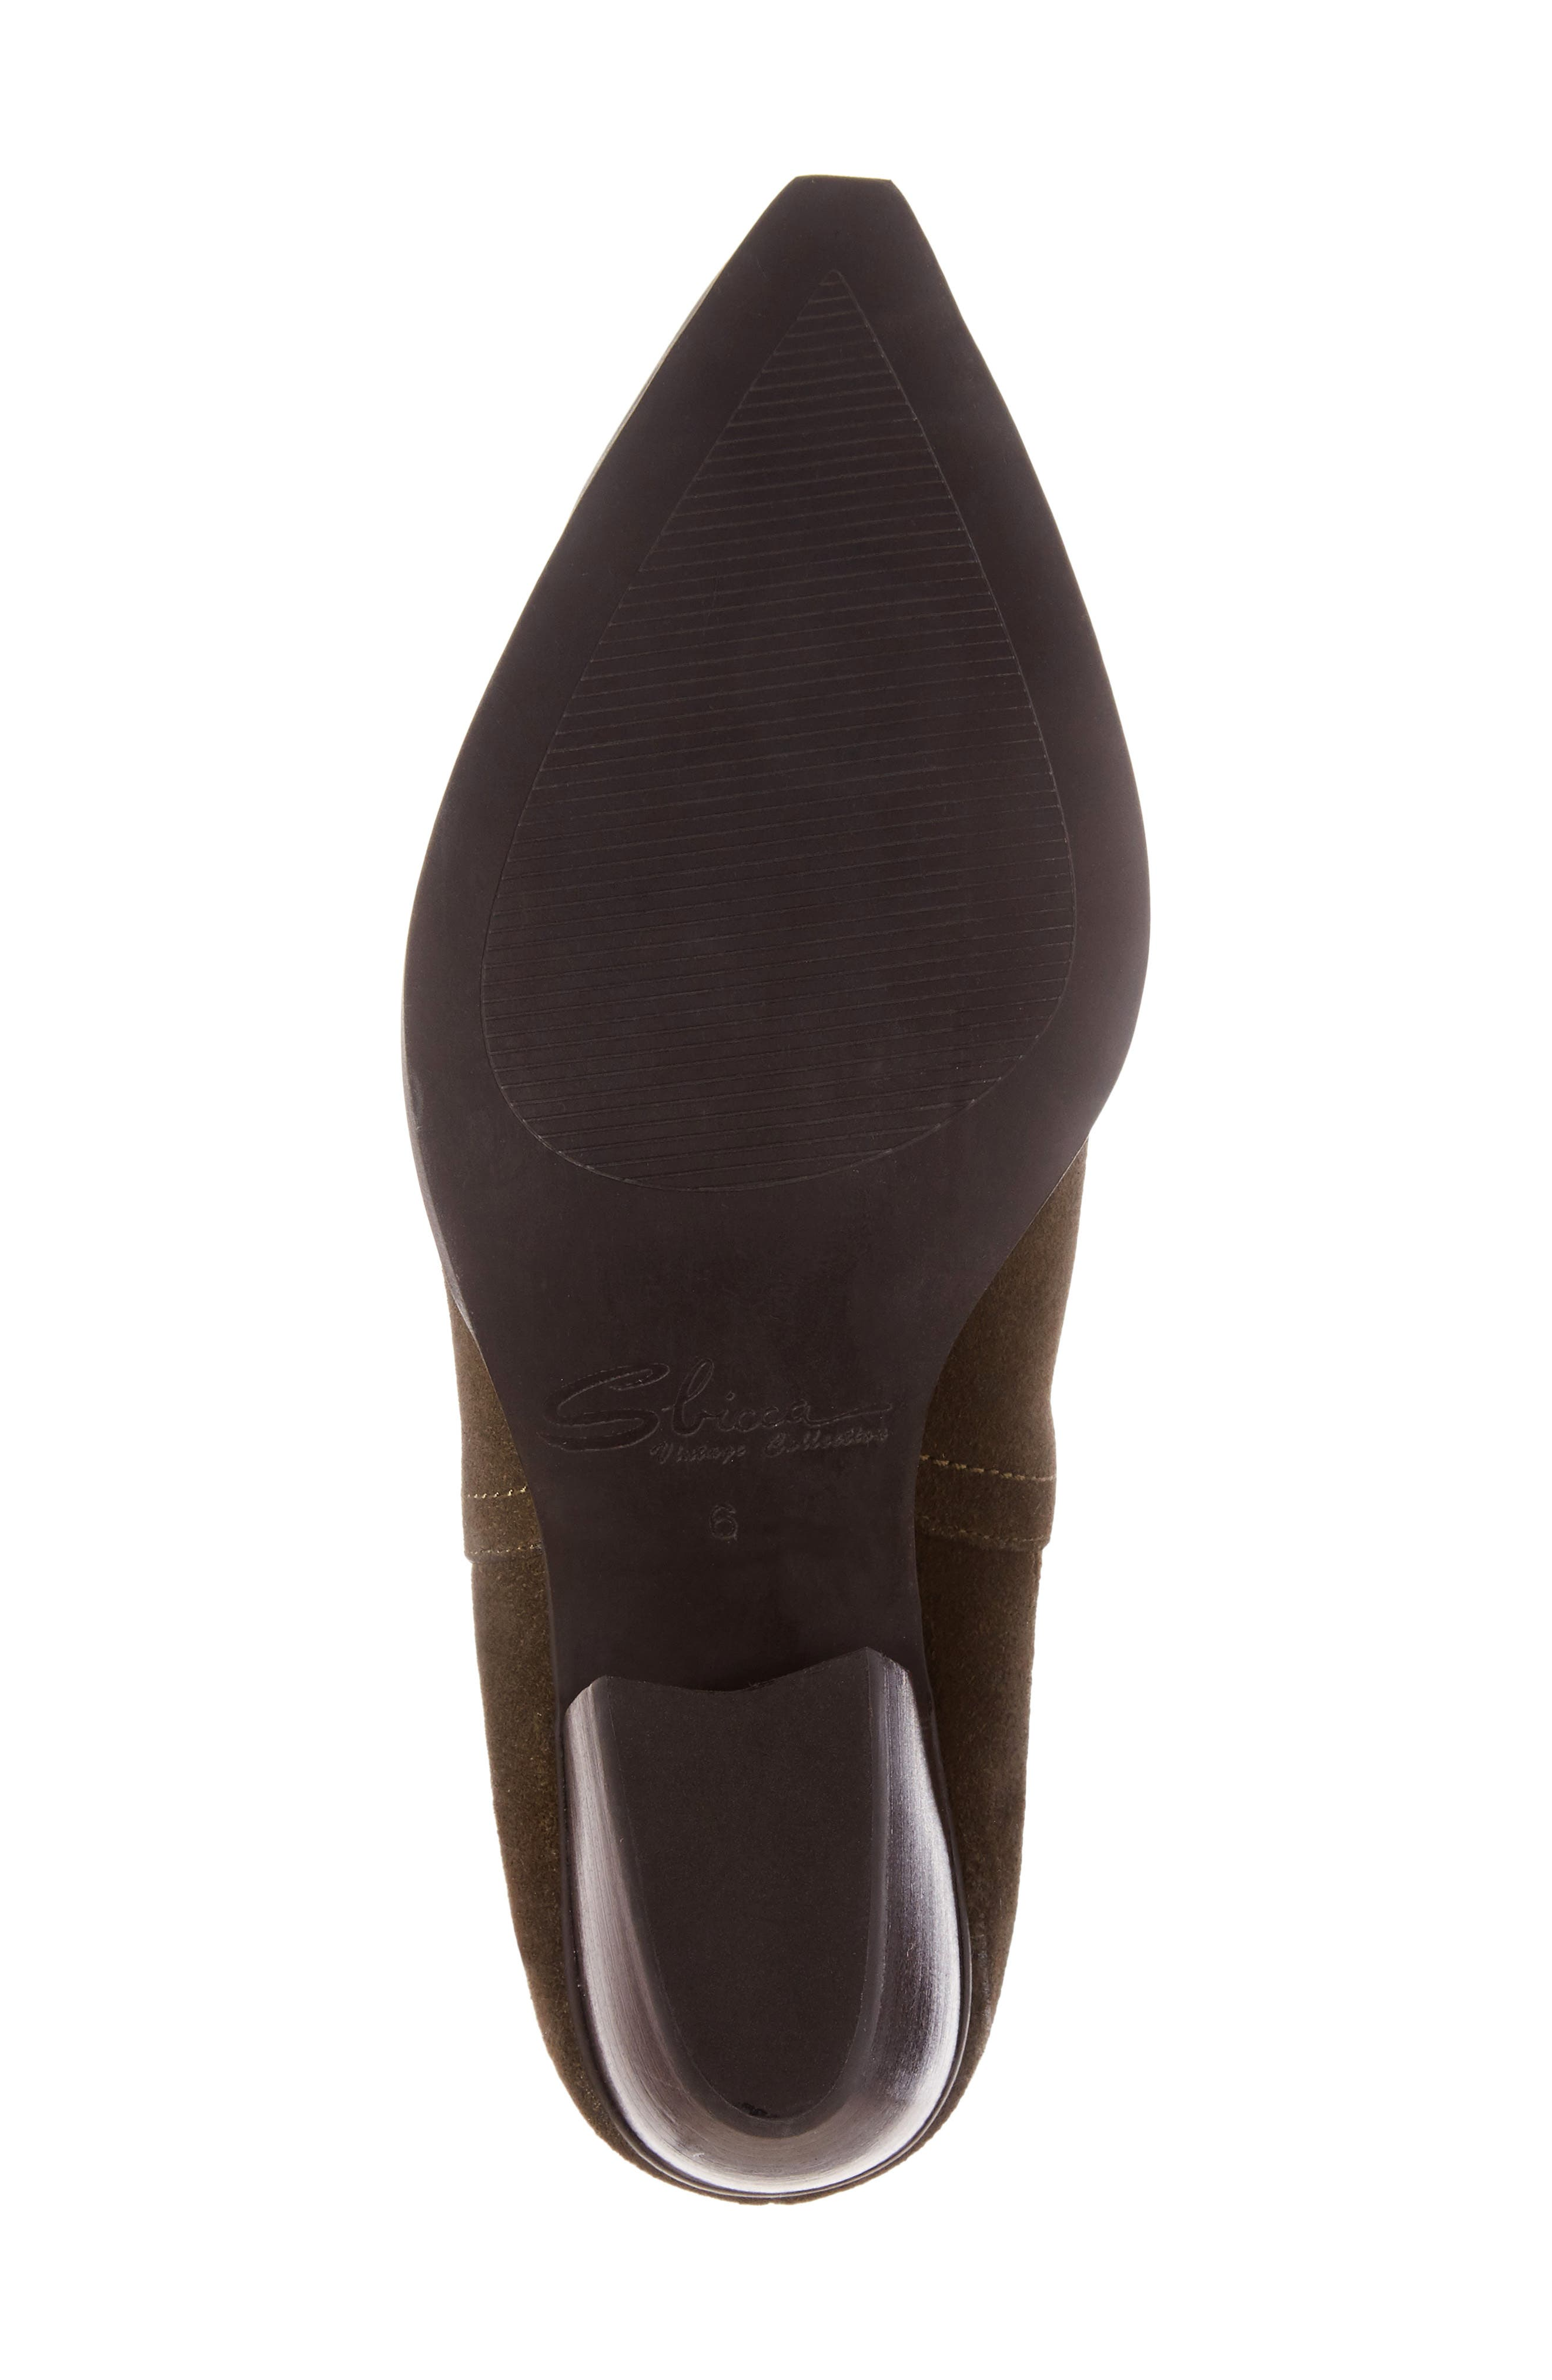 Cardinal Pointy Toe Bootie,                             Alternate thumbnail 6, color,                             Khaki Suede